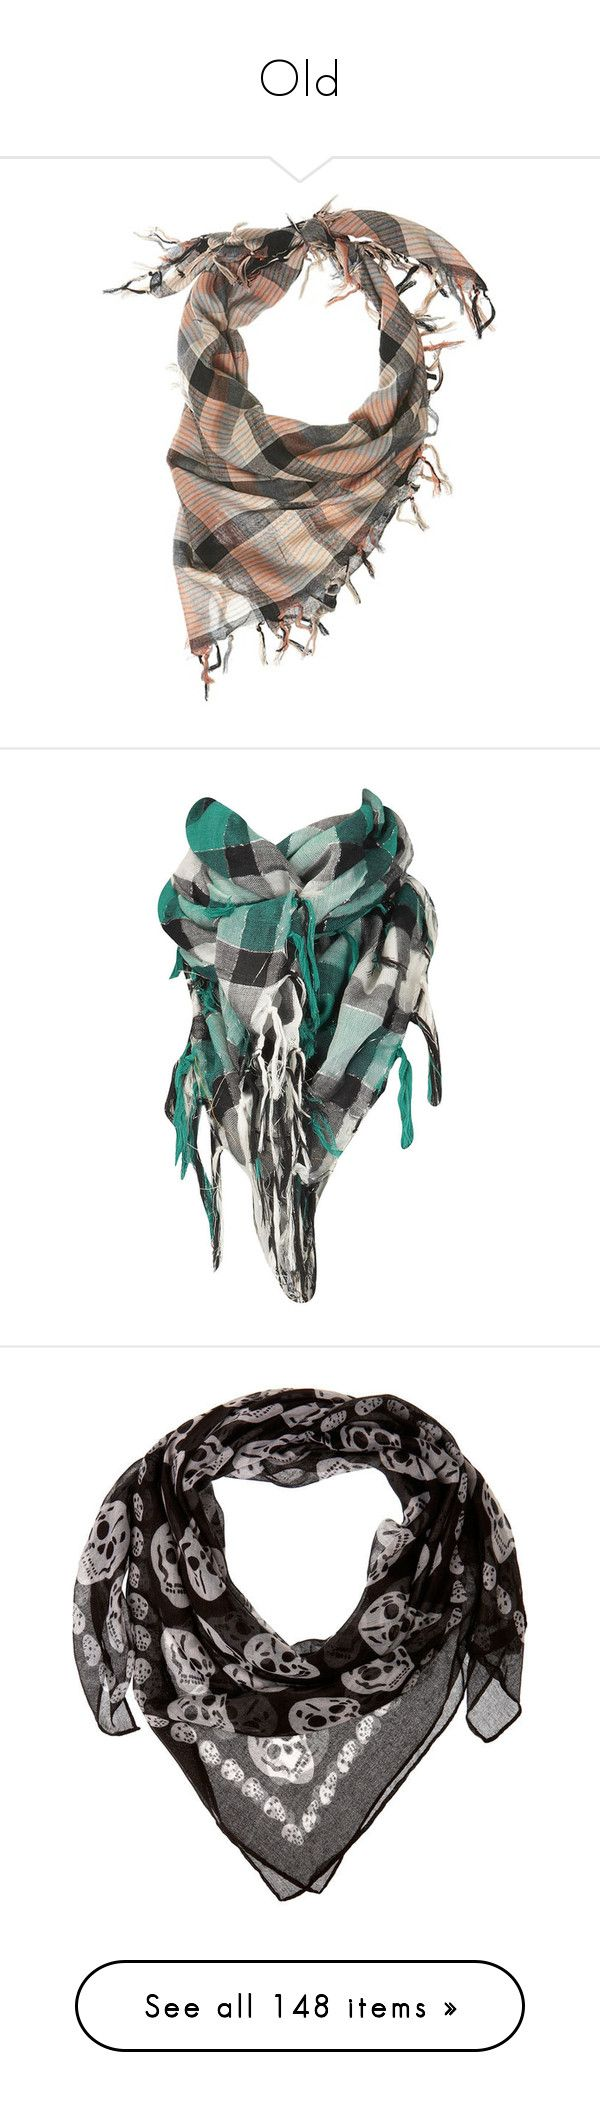 Old by annie-leah on Polyvore featuring accessories, scarves, foulard, topshop, green scarves, dorothy perkins, green shawl, sciarpe, accessories & beauty y clothing accessories #scarvesamp;shawls Old by annie-leah on Polyvore featuring accessories, scarves, foulard, topshop, green scarves, dorothy perkins, green shawl, sciarpe, accessories & beauty y clothing accessories #scarvesamp;shawls